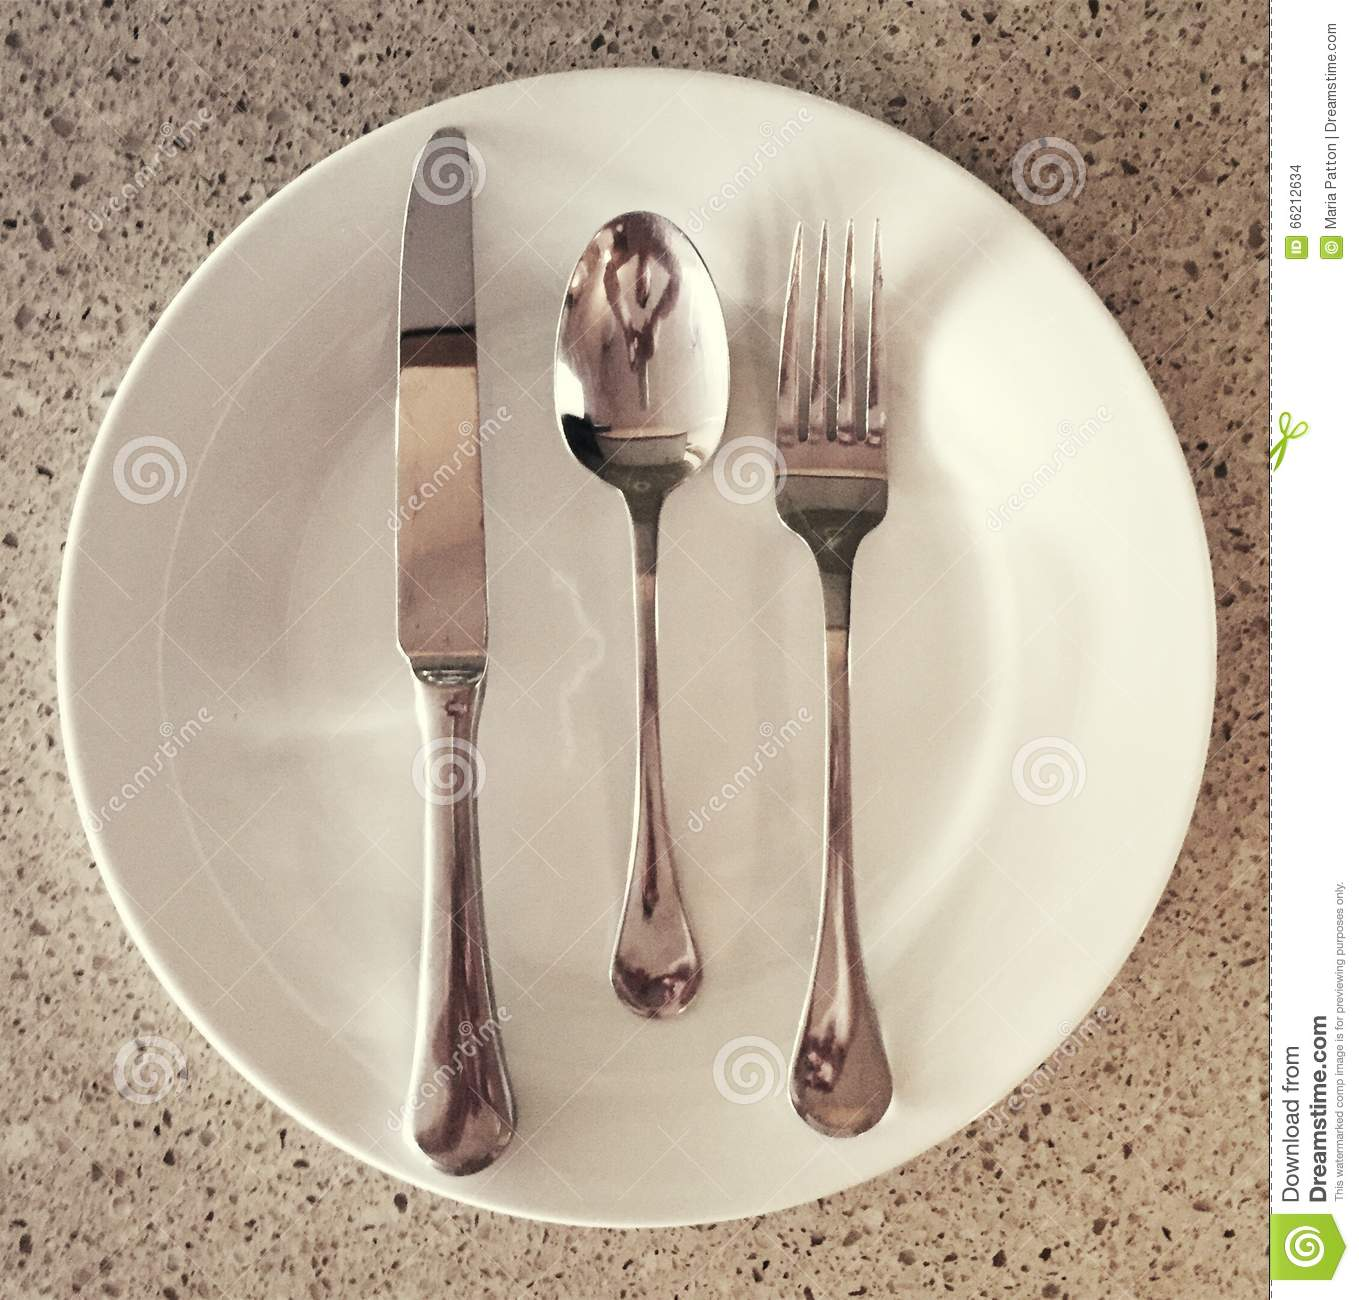 The Clean Plate Club stock photo. Image of whitesale - 66212634